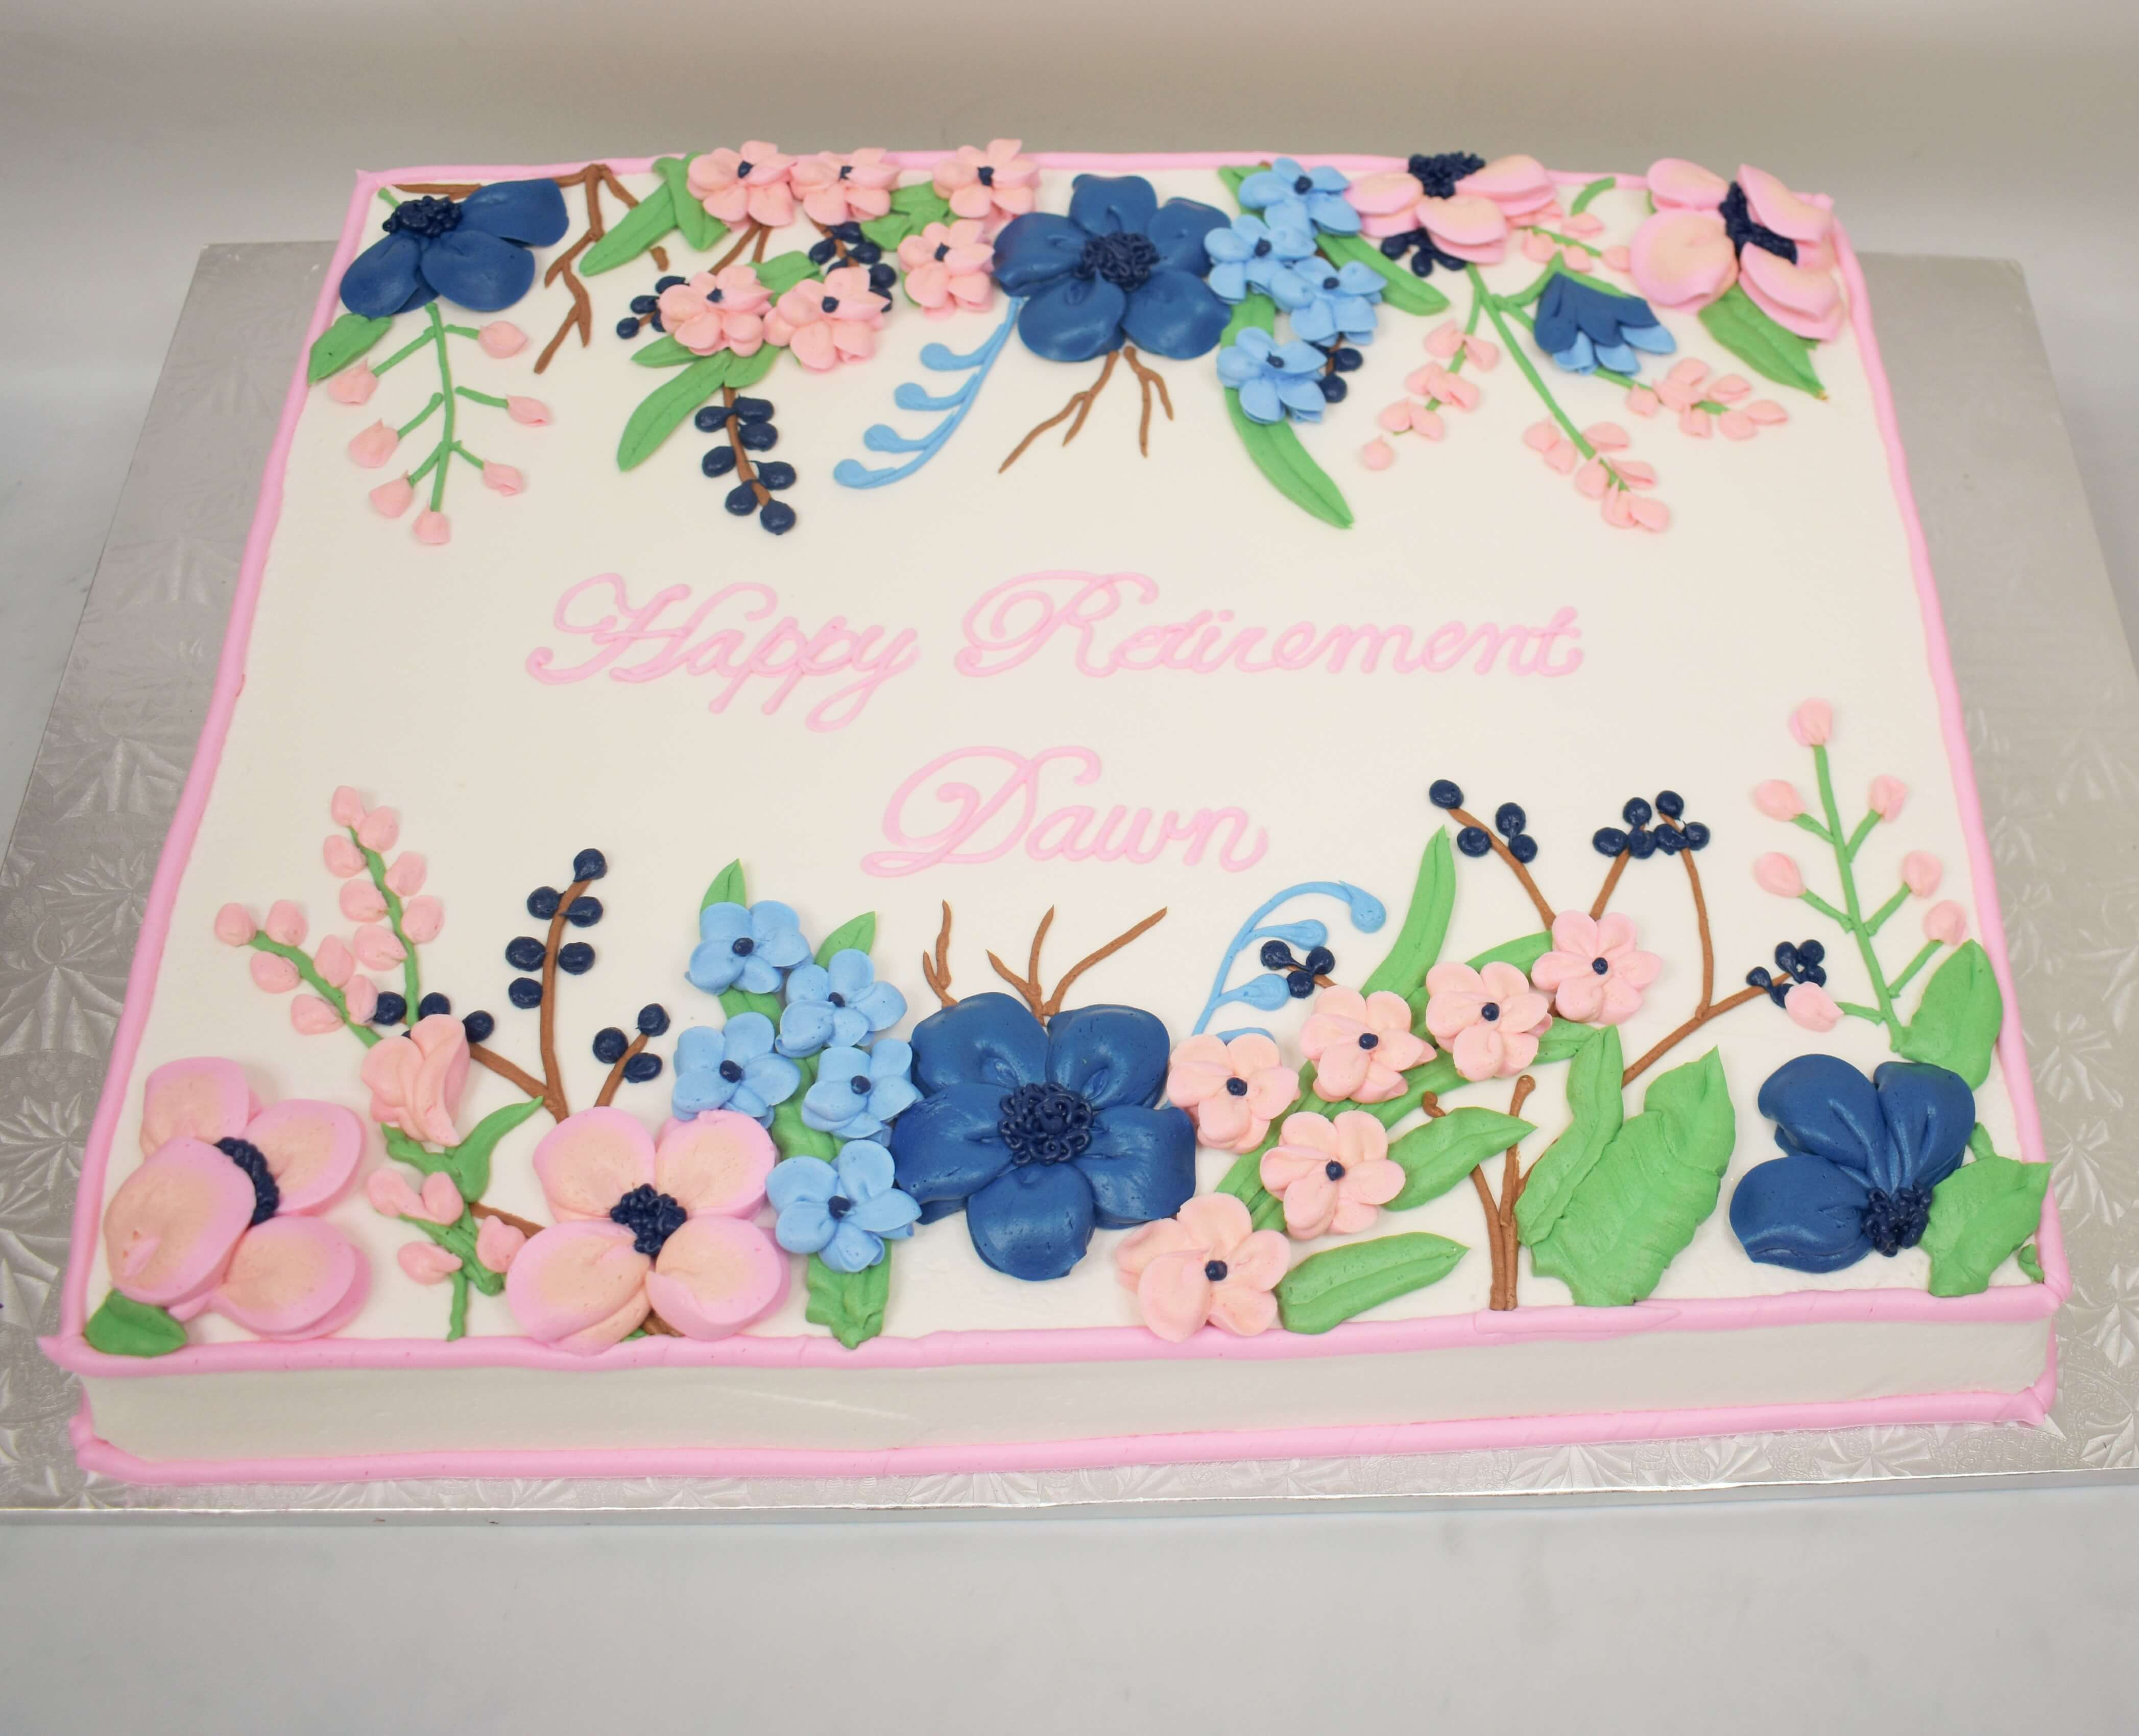 McArthur's Bakery Custom Cake with Assorted Flowers, Lite Pinks, Blues